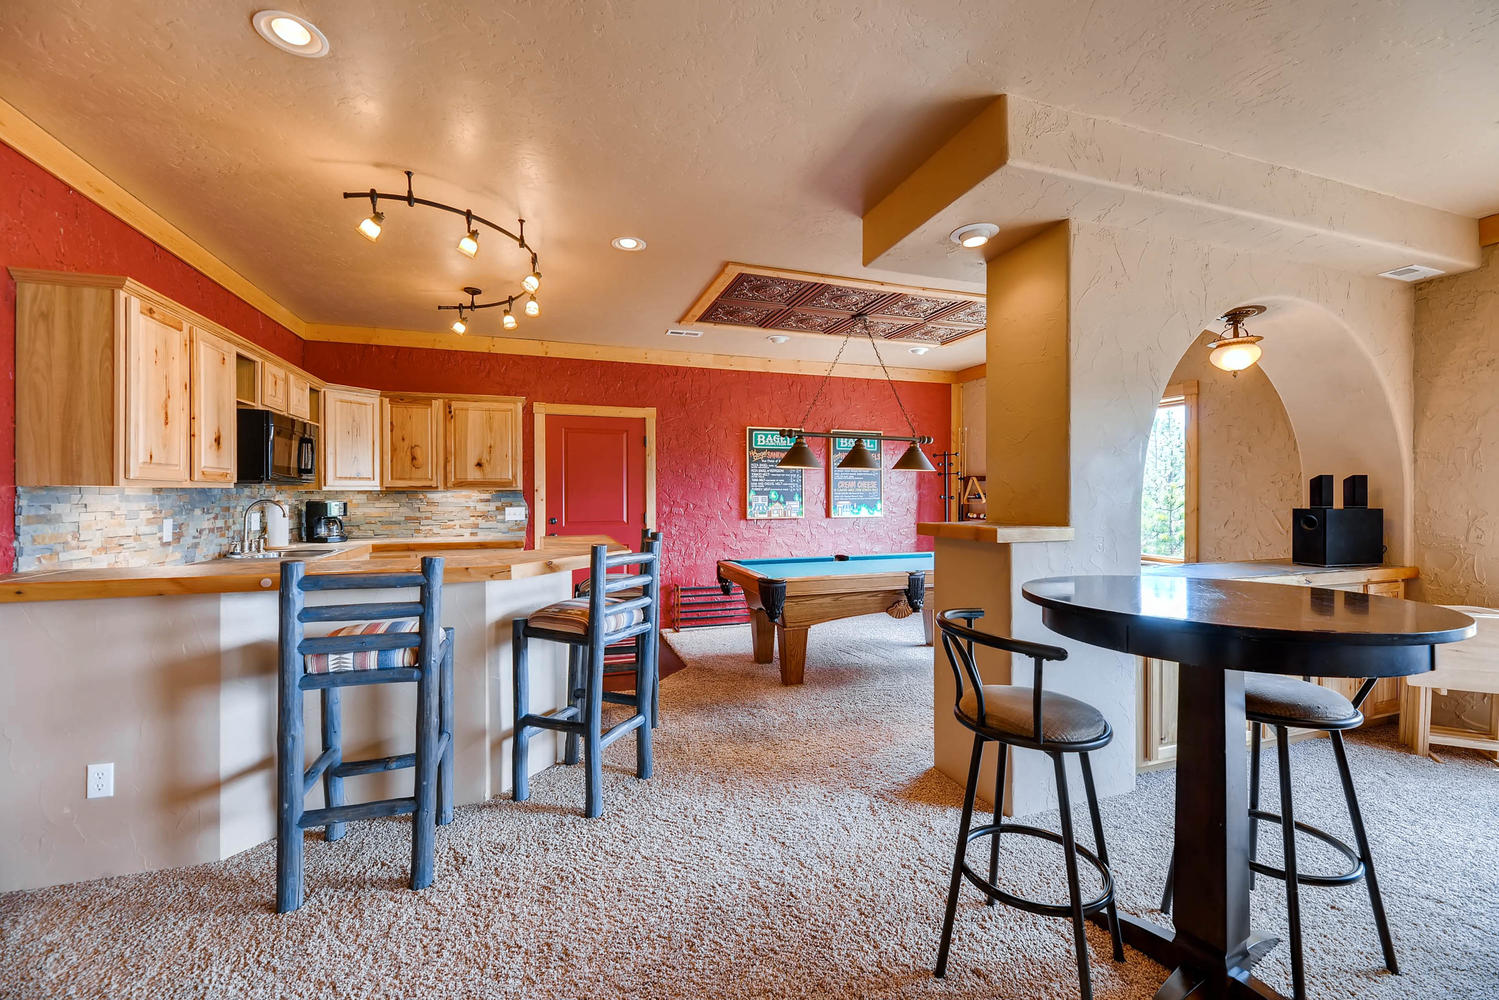 A pub table and kitchen bar create plenty of seating for enjoying some game time snacks.